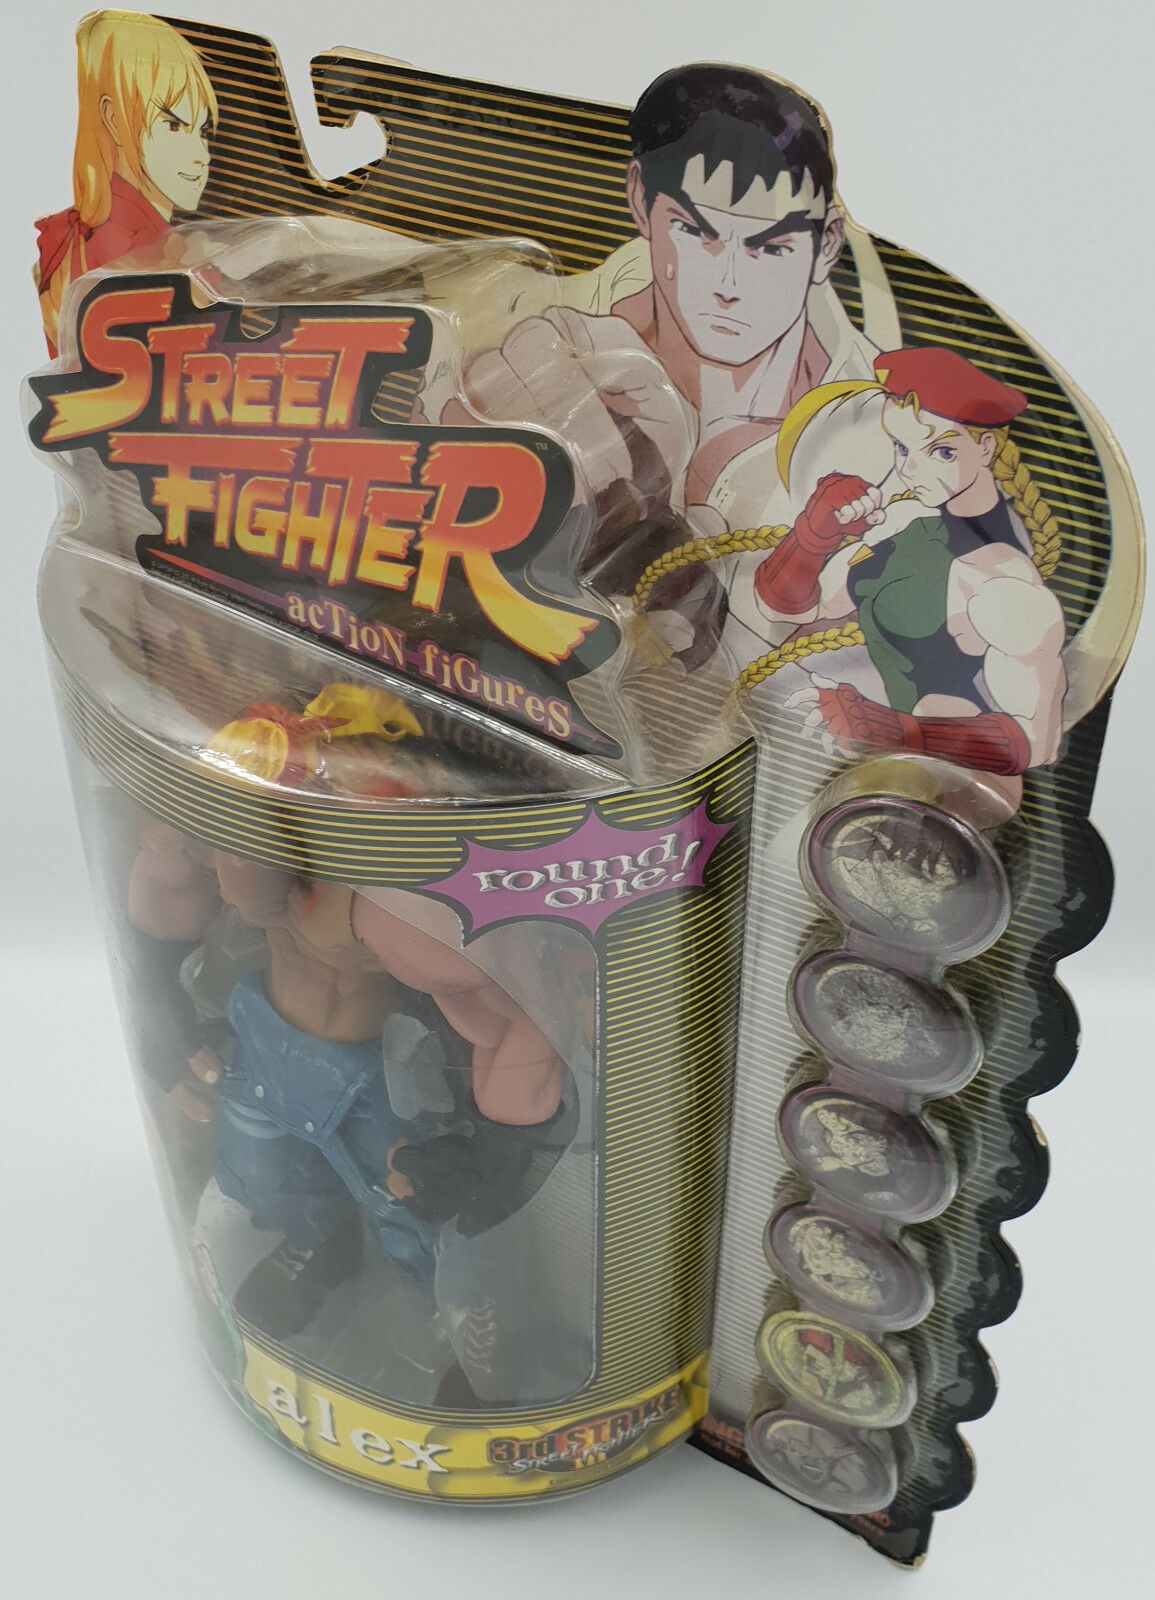 STREET STREET STREET FIGHTER   ALEX PLAYER TWO ACTION FIGURE MADE BY BAN DAI IN 1999 (BY) 9baa57